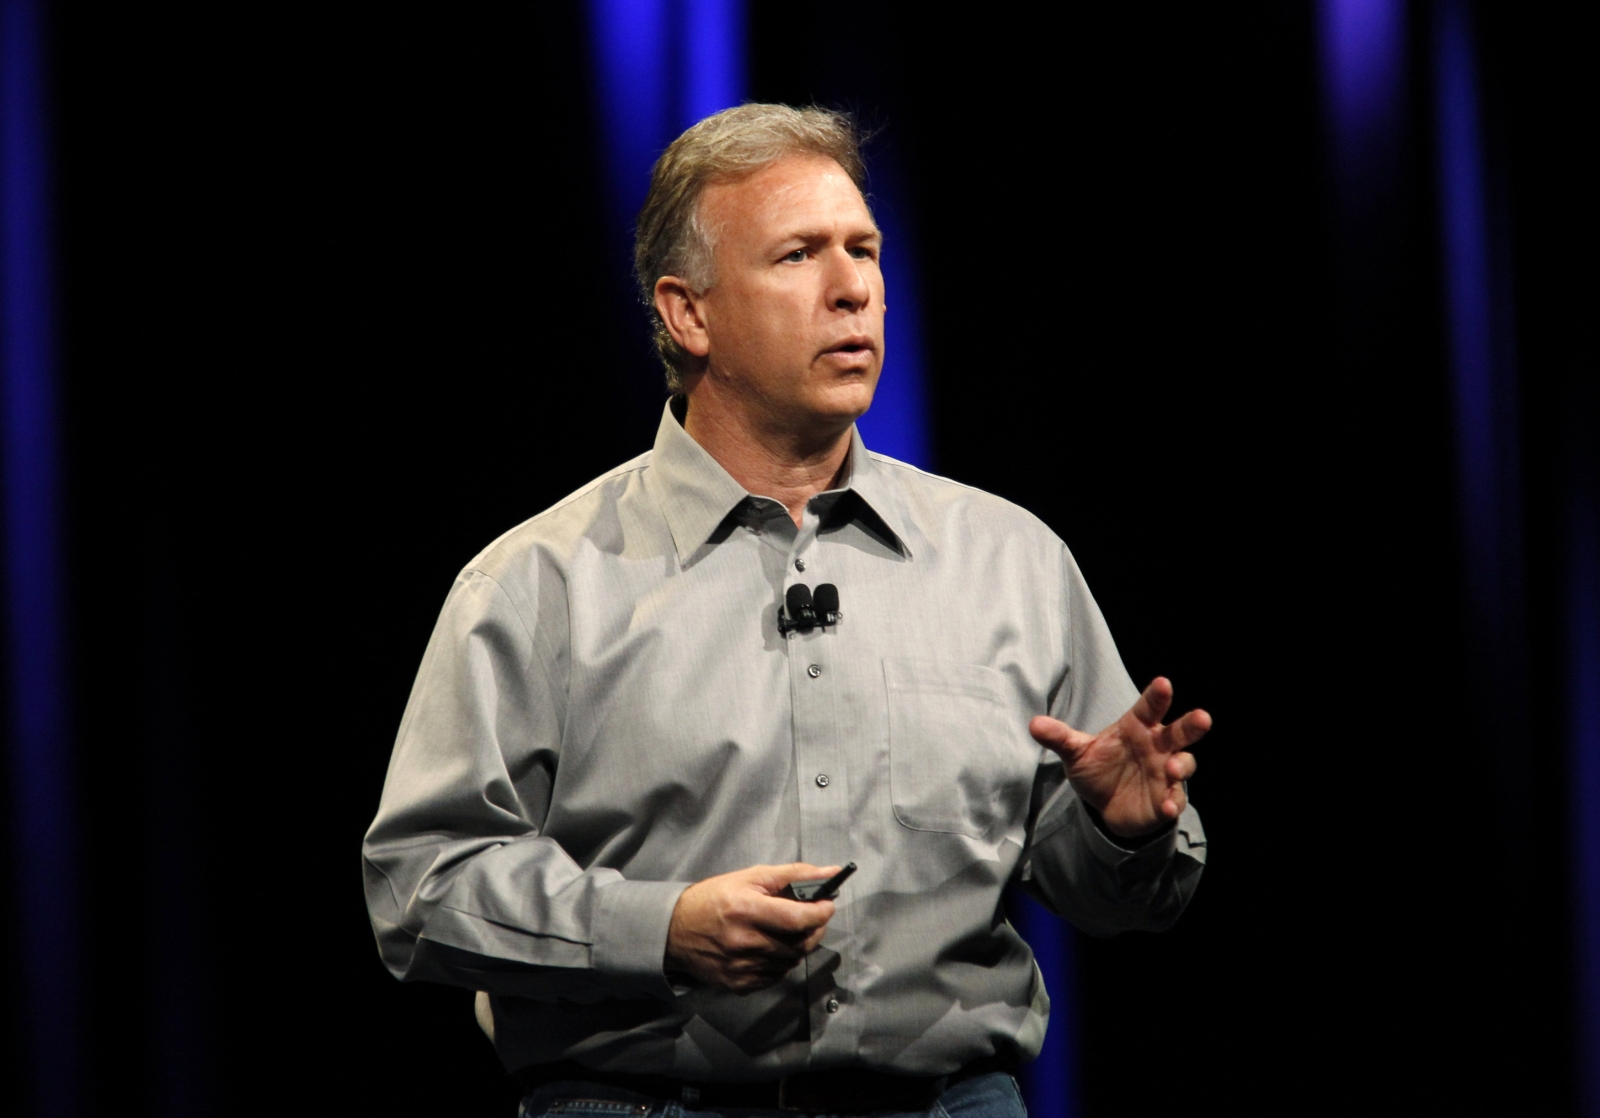 Apple senior vice president Phil Schiller